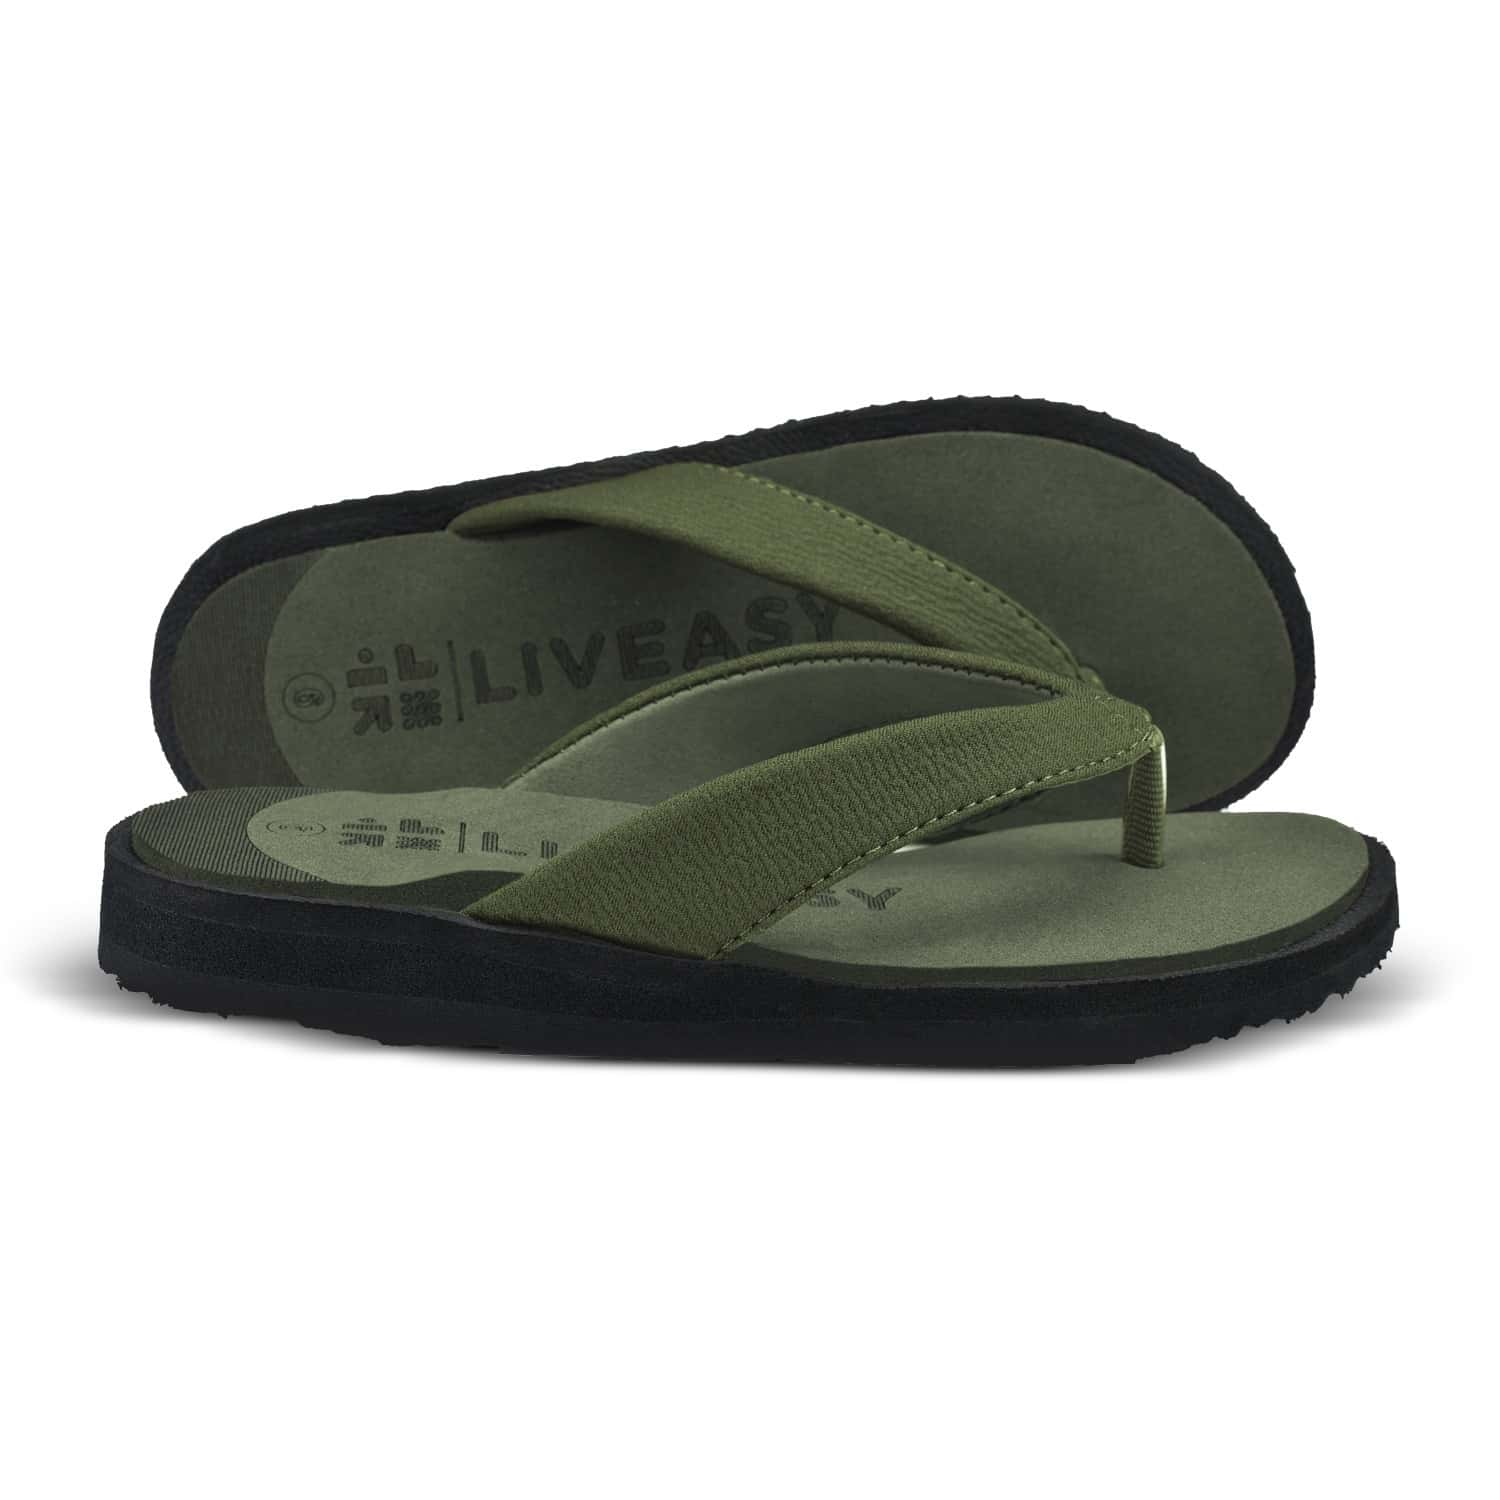 Liveasy Essentials Women's Diabetic & Orthopedic Slippers - Olive Green - Size Uk 5 / Us 8